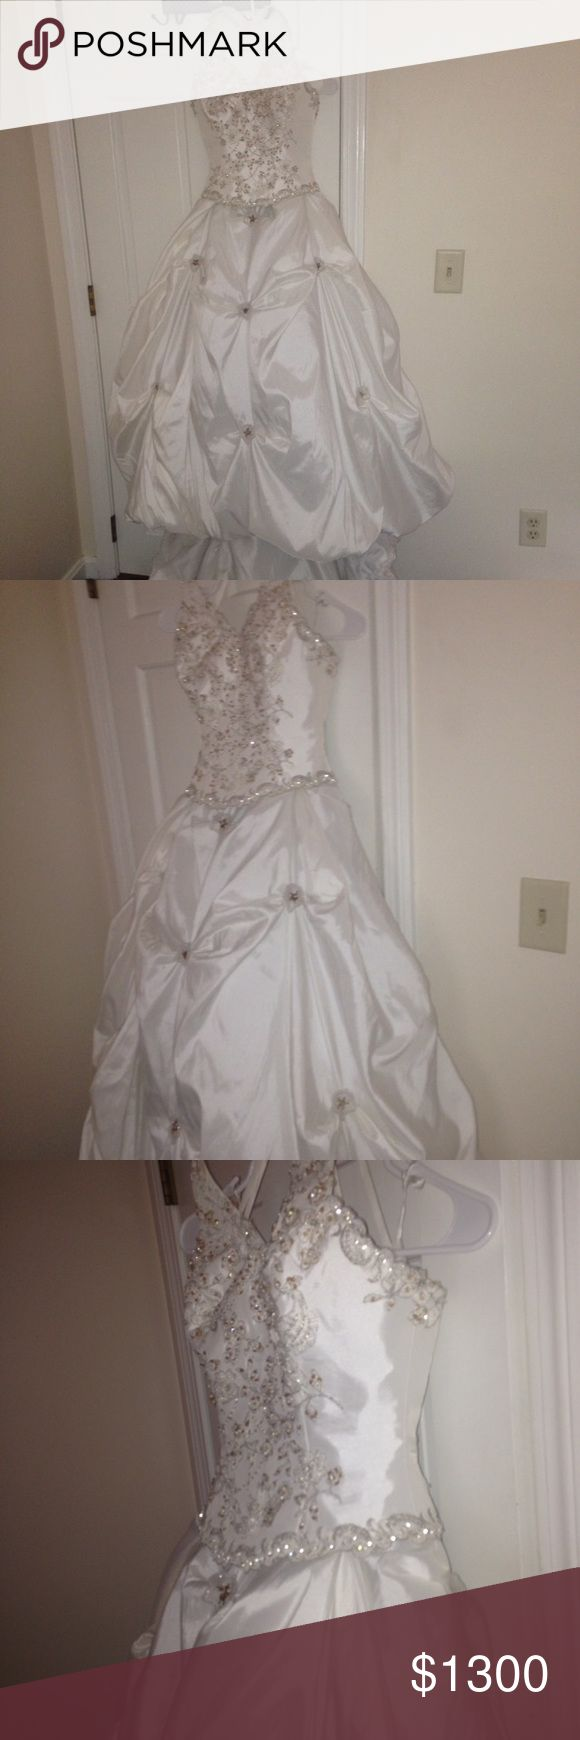 SIZE 2 GORGEOUS Wedding Dress CINDERELLA Princess Ball Gown Wedding Dress. Model, beach road trips,  cheer pageant friend lounging sister trendy shoulder formal  top one shoulder  ruffles ruffle shirt cute shirt pageant date night poolside anniversary birthday date night gift idea birthday friends mothers present night engagement Boutique Dresses Wedding